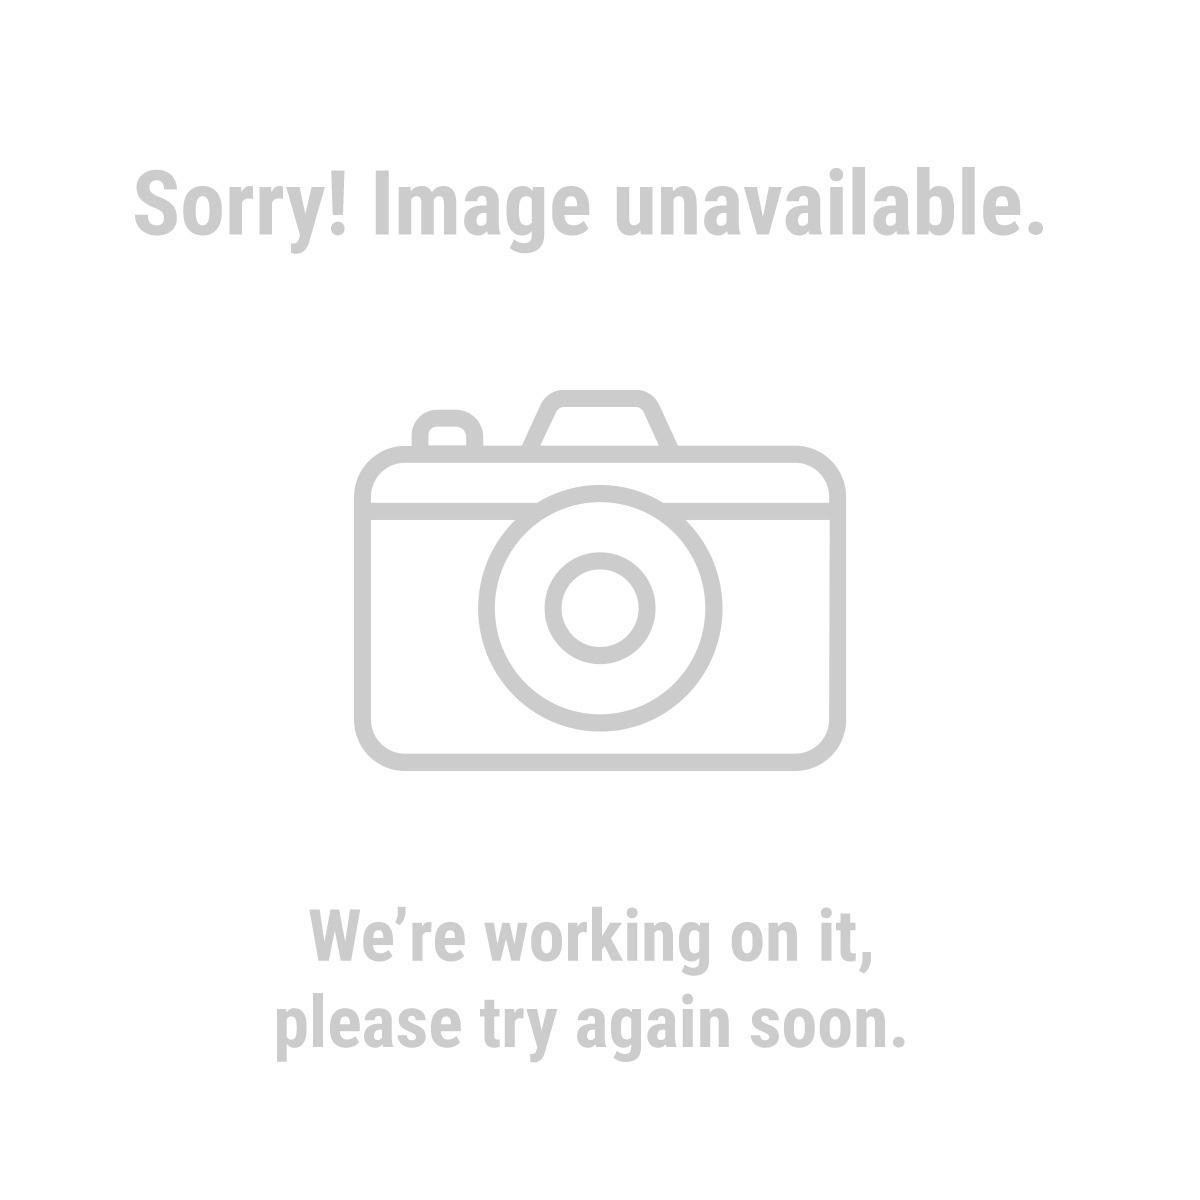 Haul-Master® 99721 400 Lb. Receiver-Mount Motorcycle Carrier